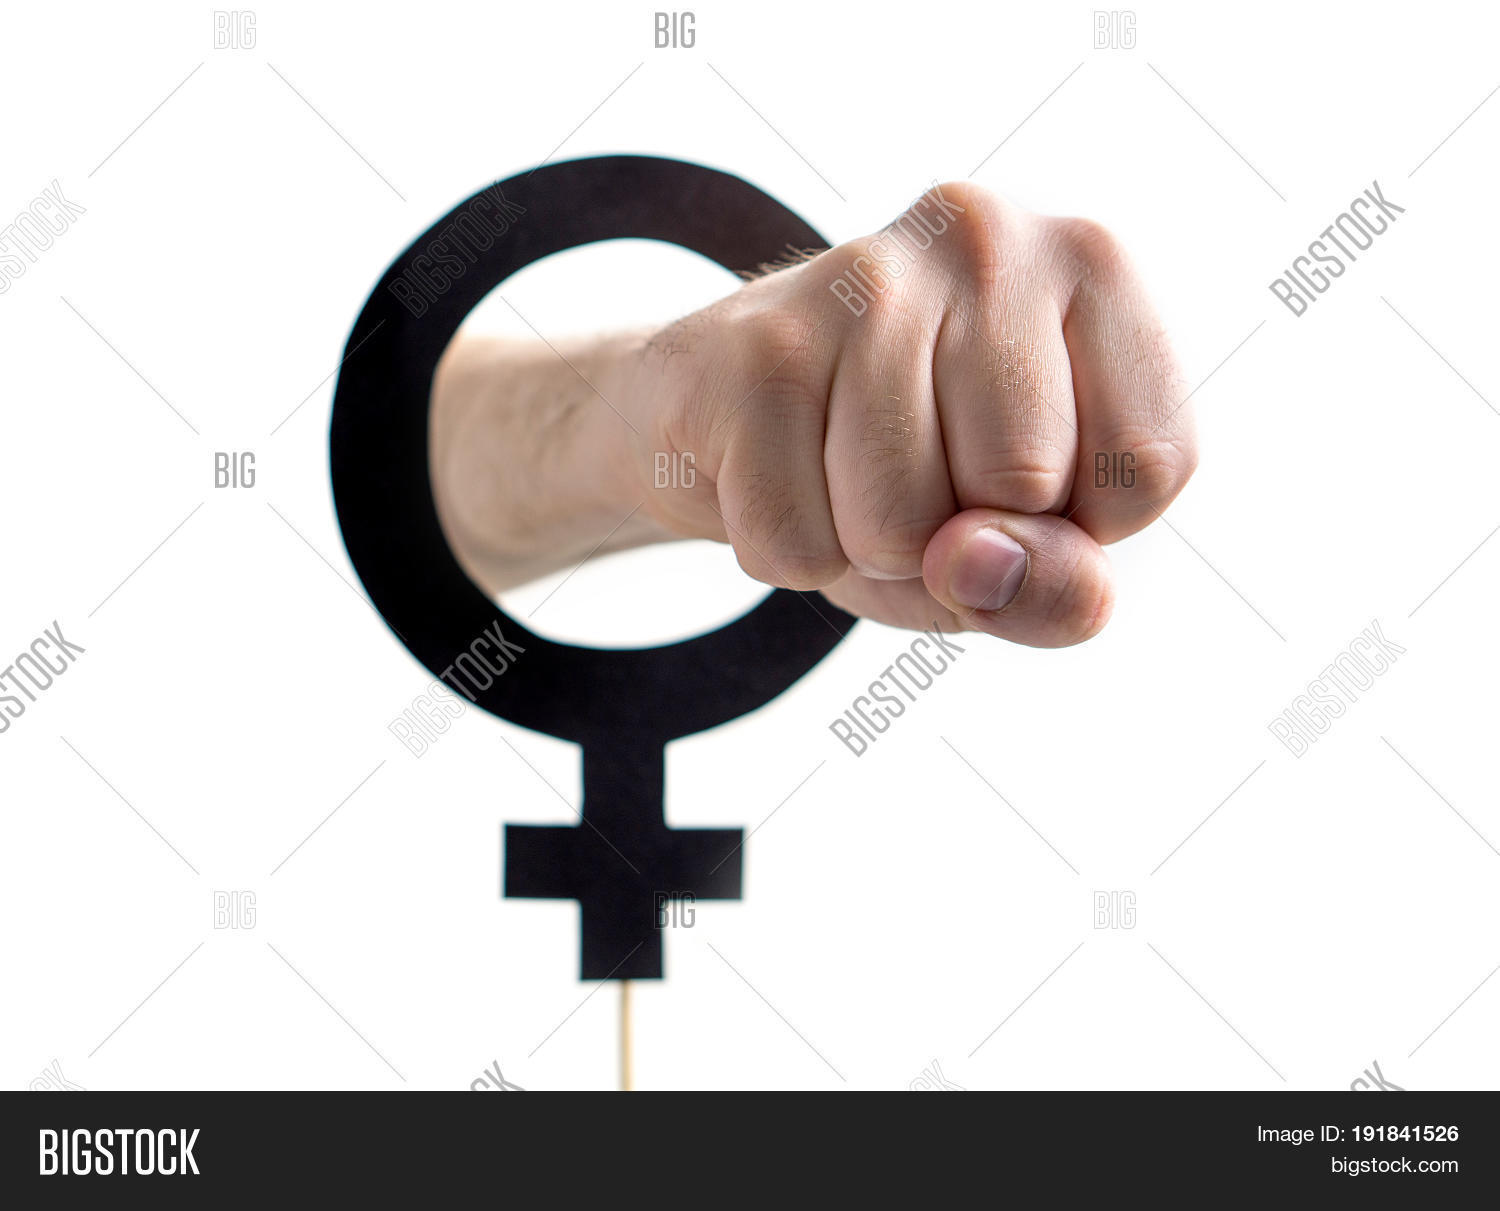 Male Chauvinism Image Photo Free Trial Bigstock